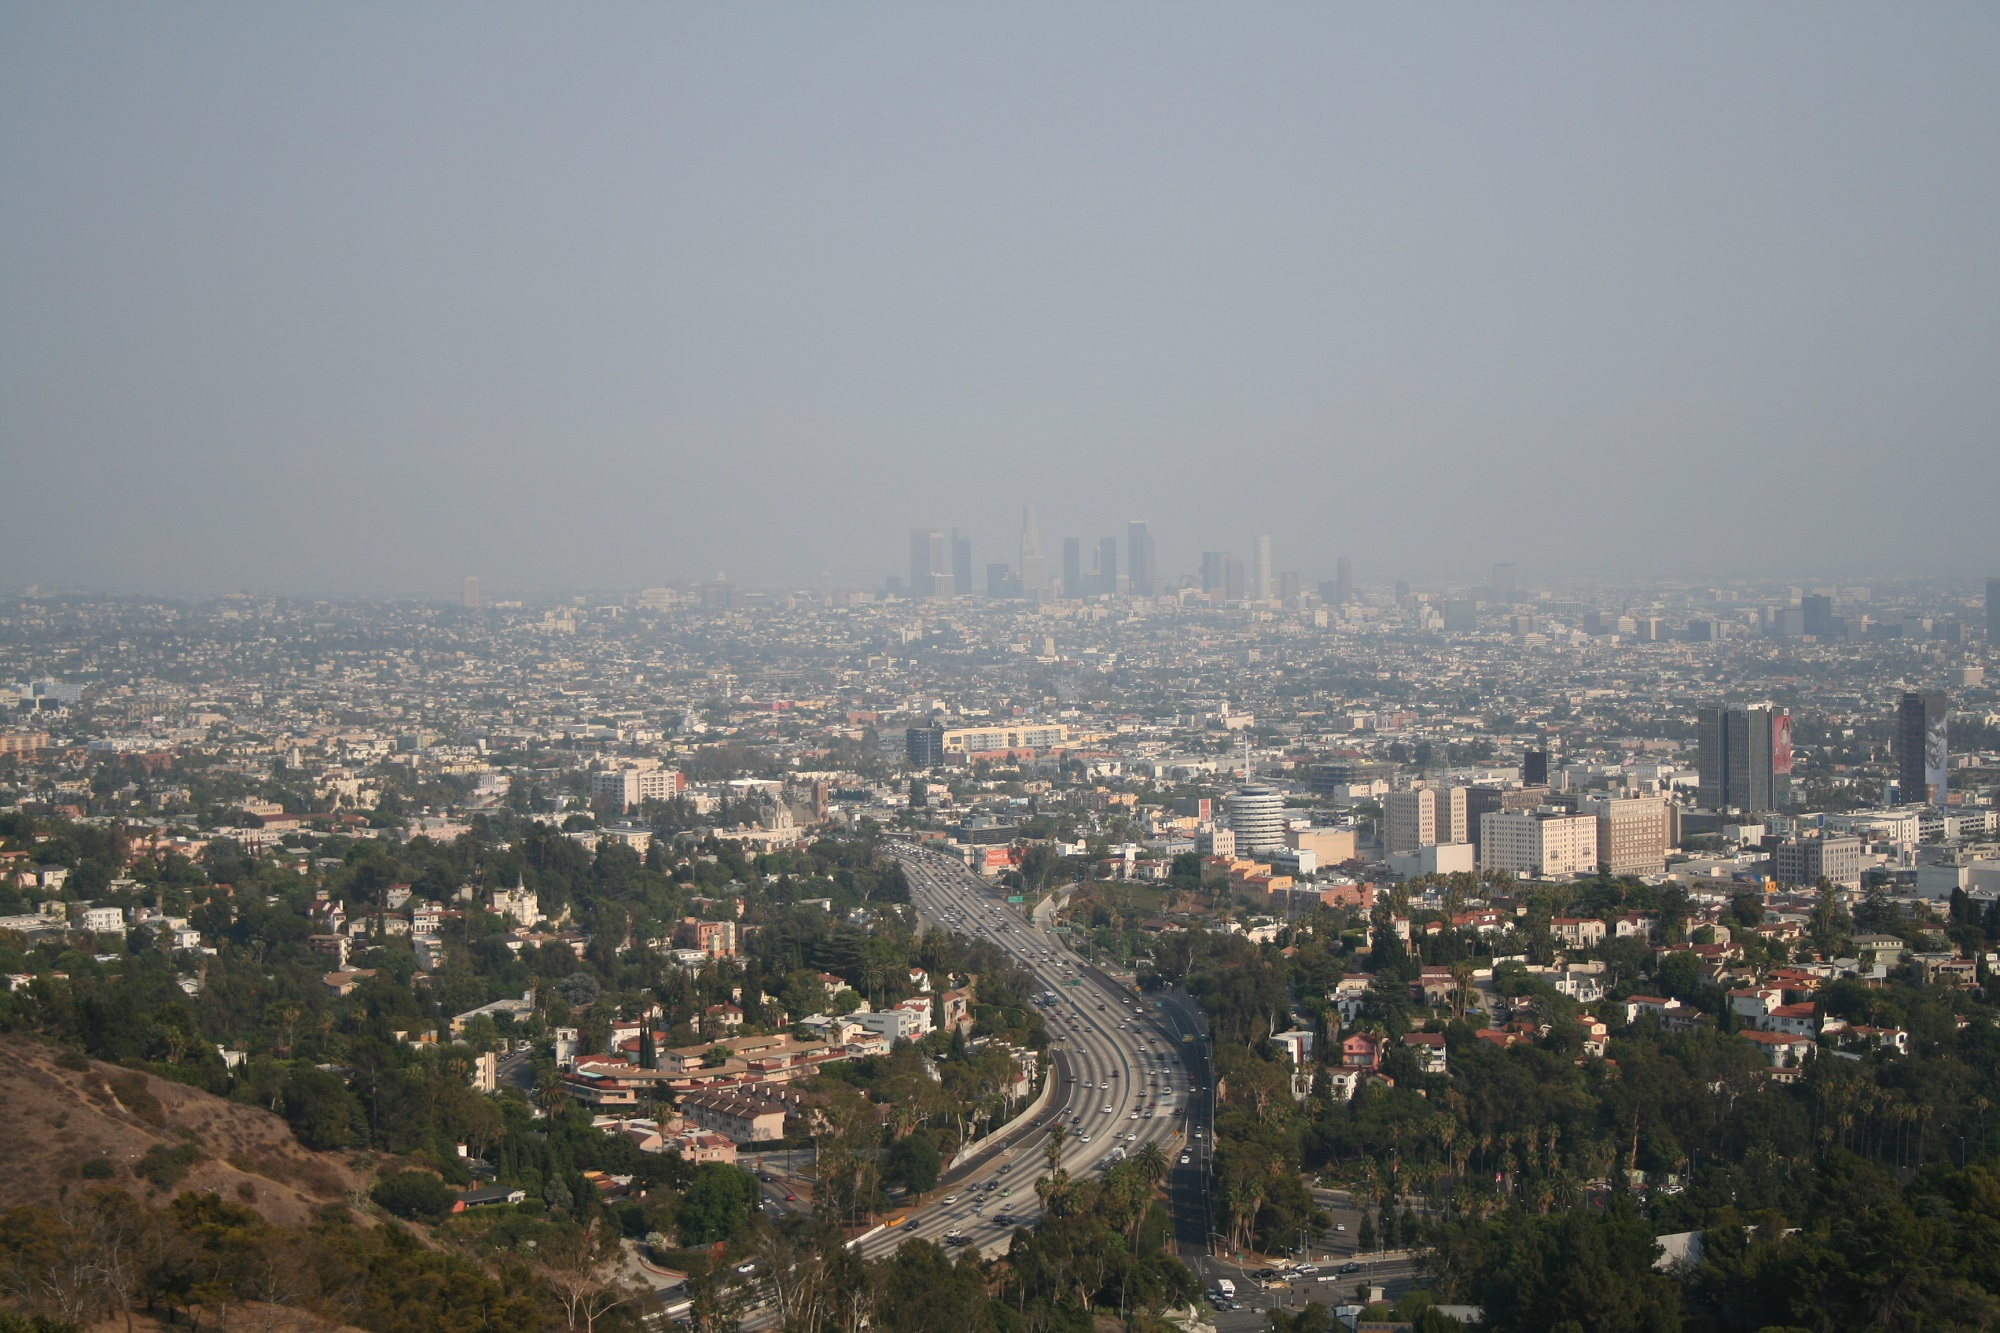 Los Angeles in smog, 5 August 2007. Photo: Massimo Catarinella, https://commons.wikimedia.org/wiki/File:LosAngelesSmog.jpg